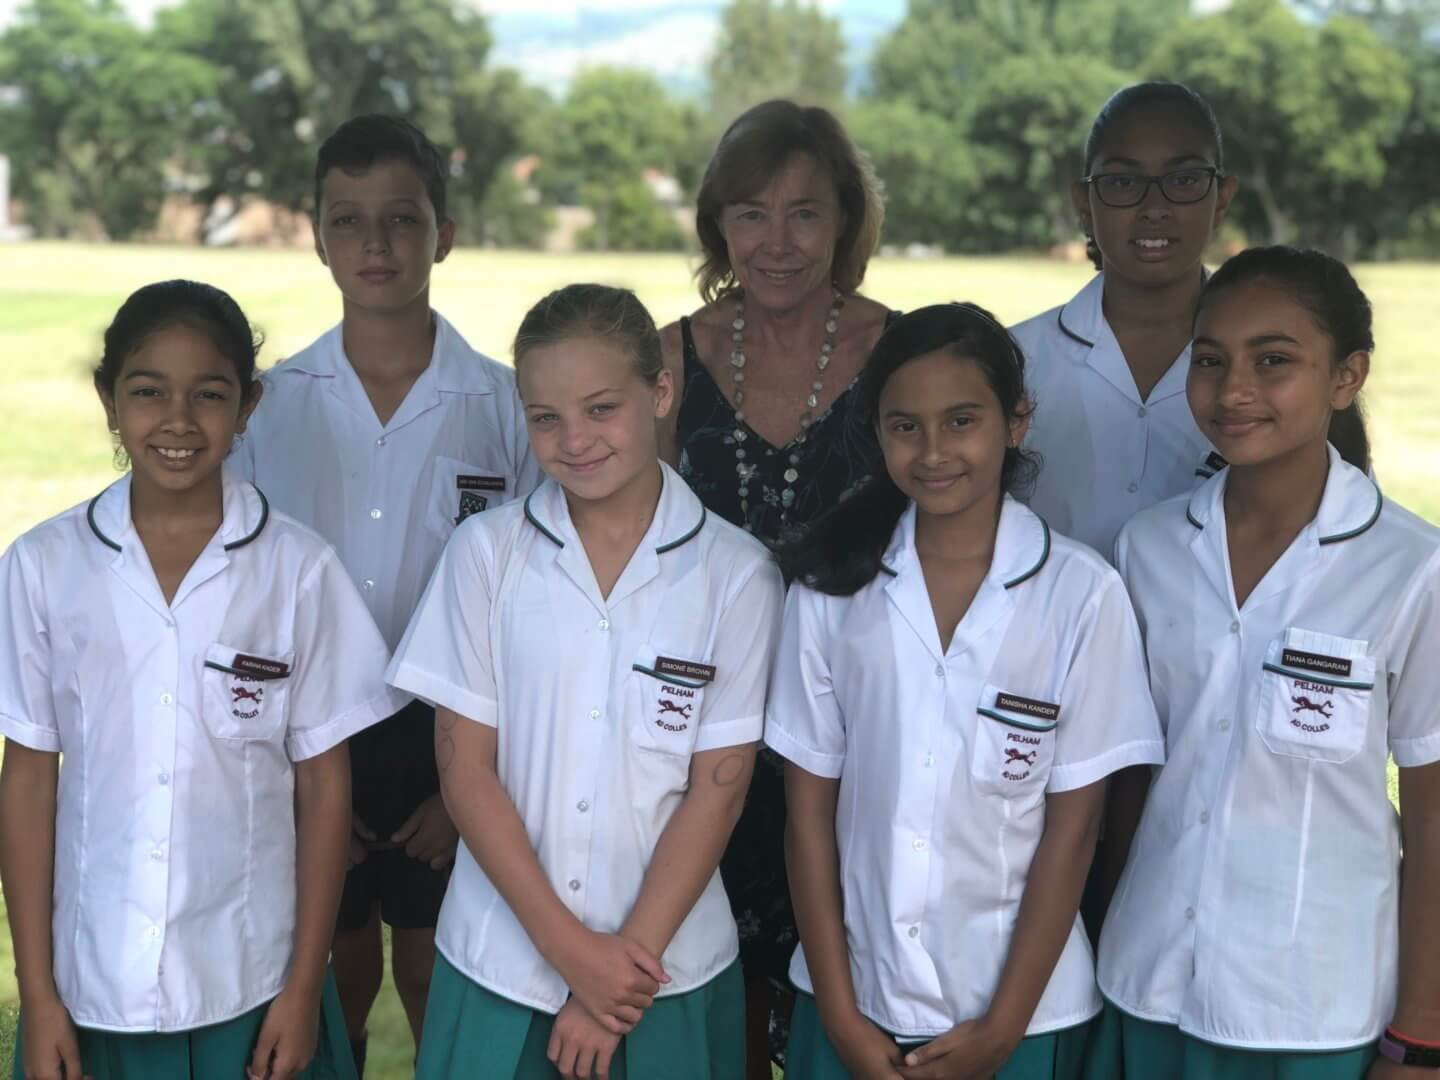 Pictured from Left to right (back): Ian van Schalkwyk, Mrs Janet Taylor and Amirah Kader Left to right (front): Fariha Kader, Simoné Brown, Tanisha Kander and Tiana Gangaram